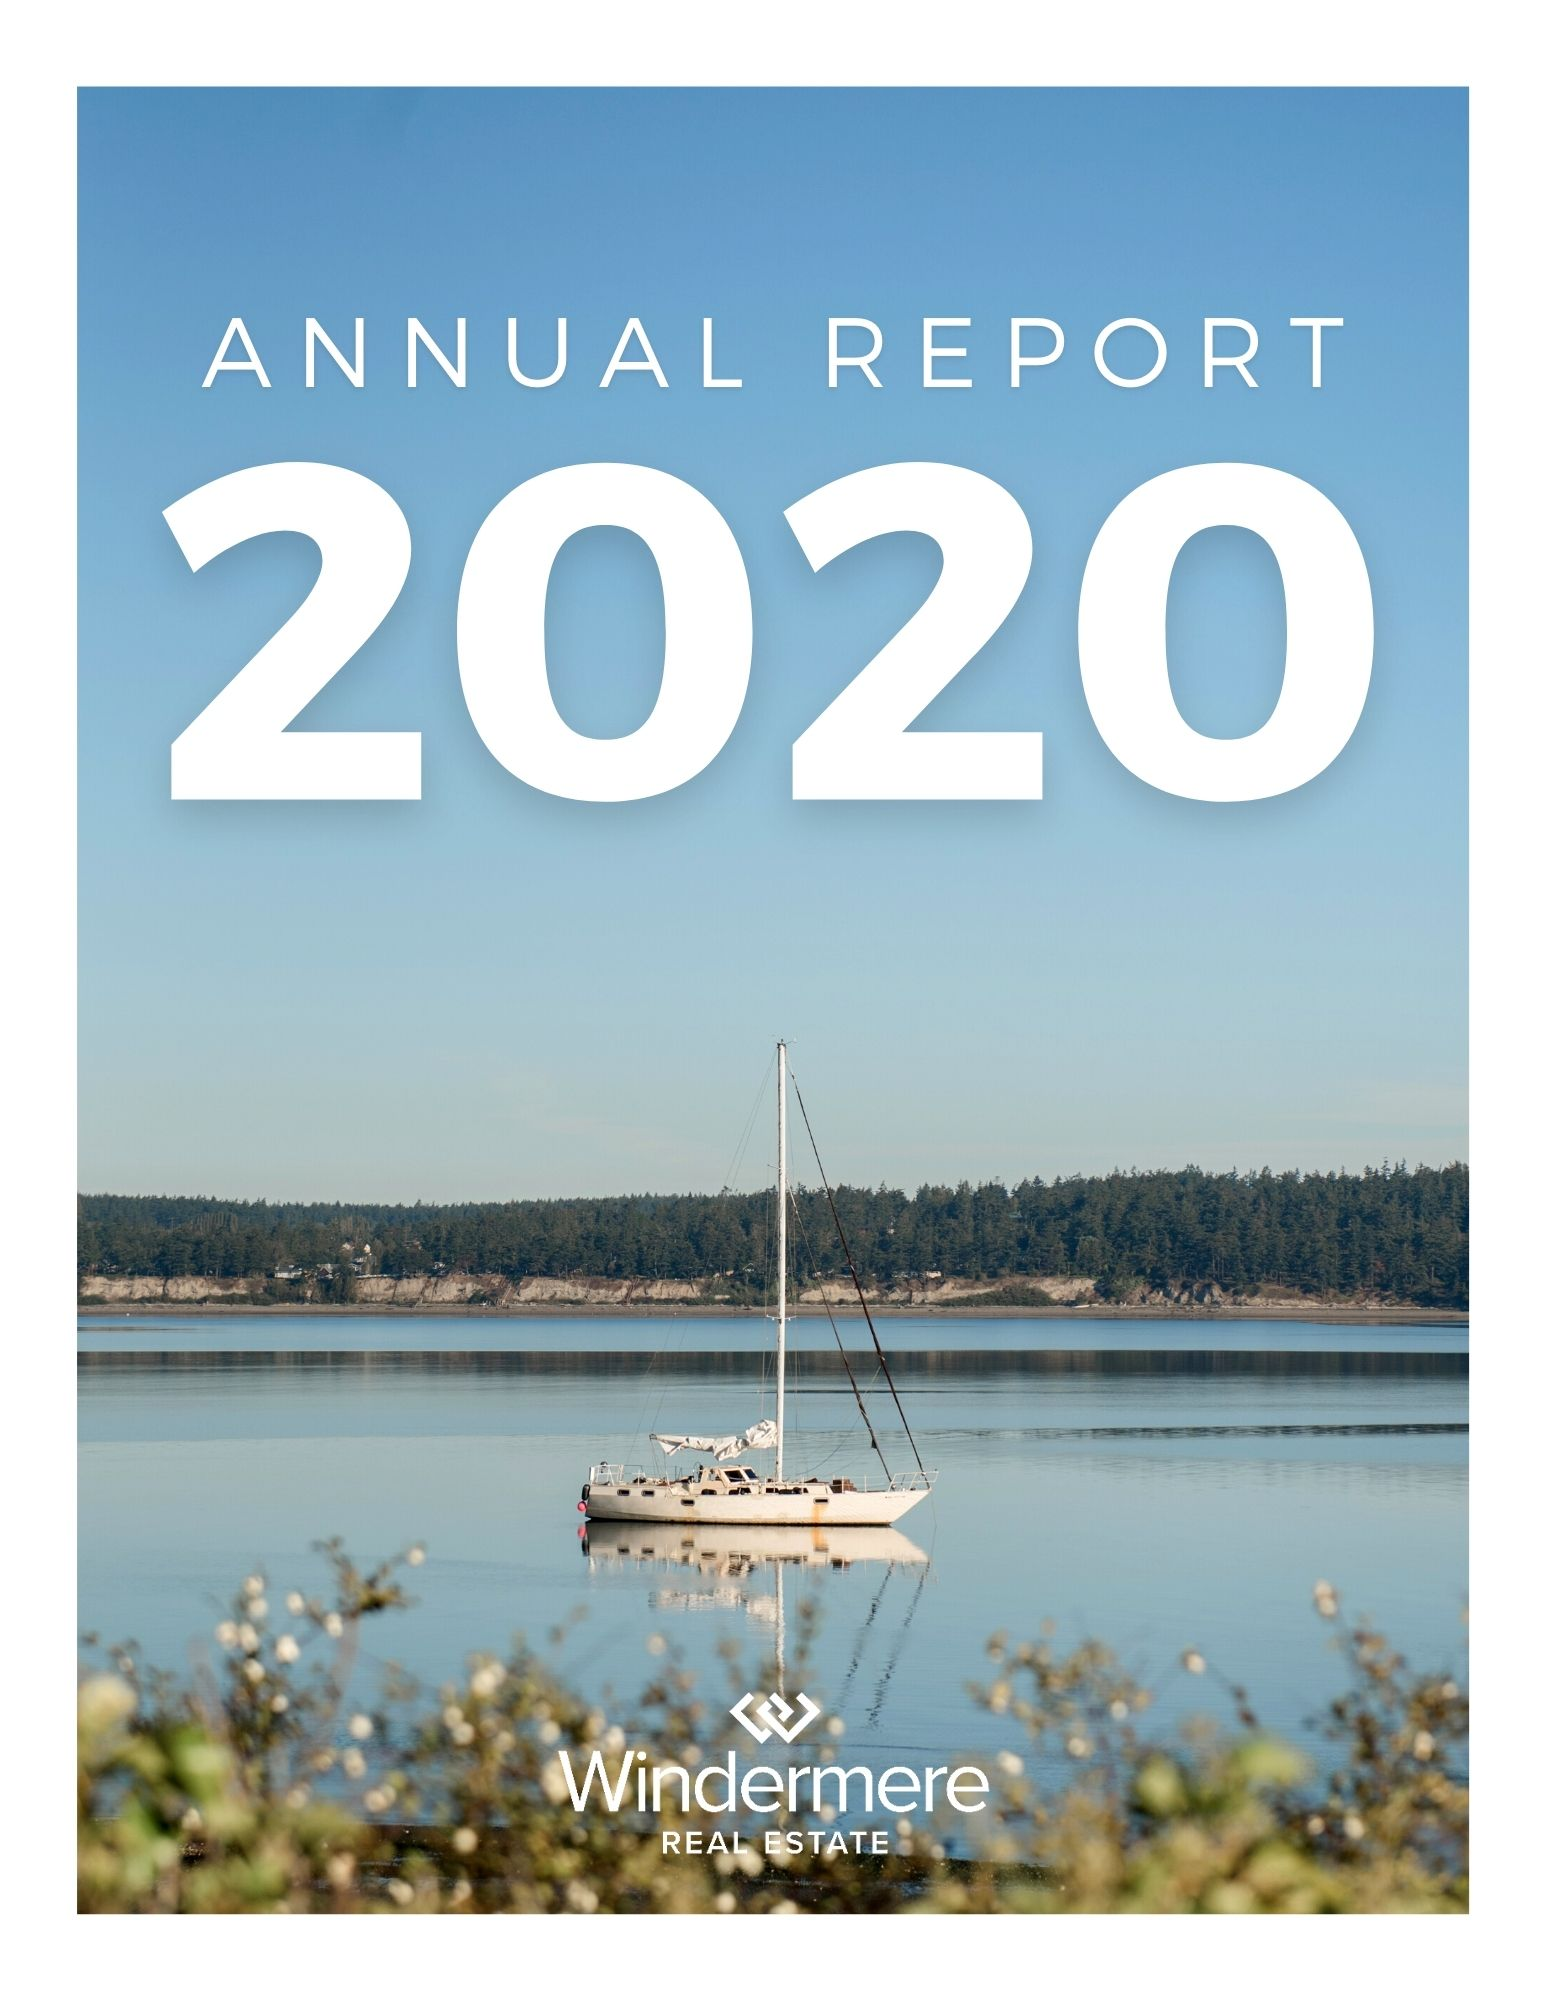 2020 Annual Report, Download